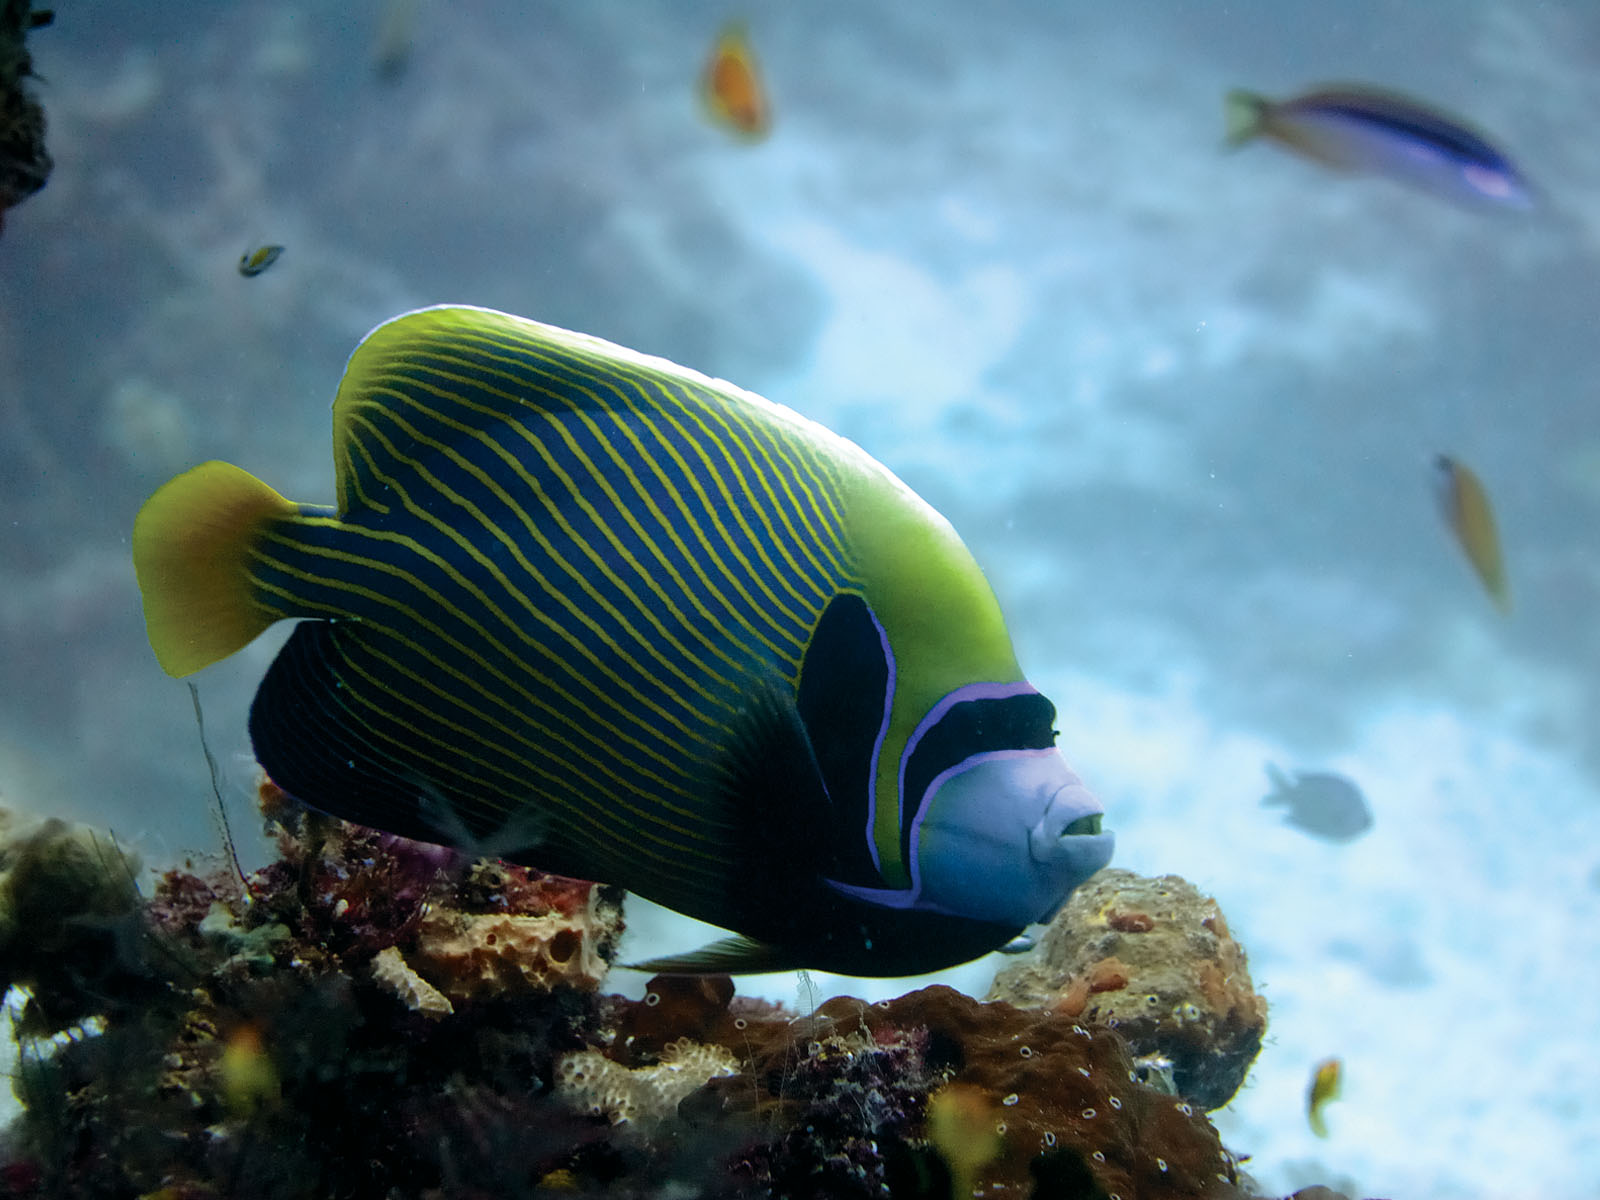 Gallery Tours & Safari - Diving & Fishing